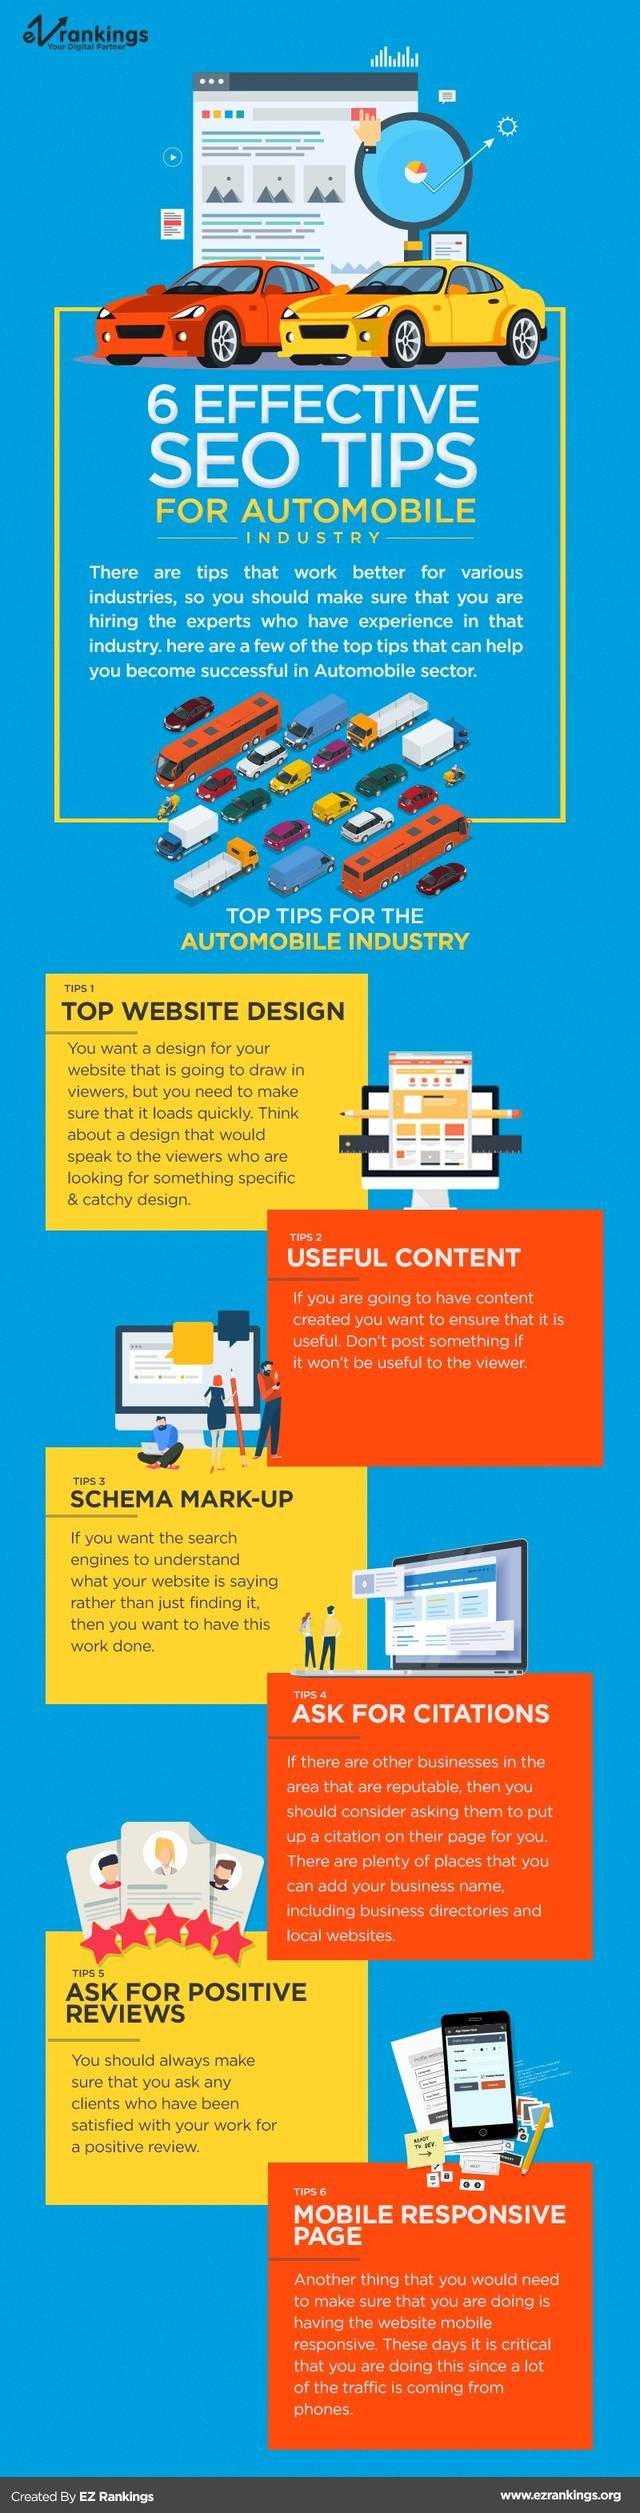 Effective seo tips for automobile industry